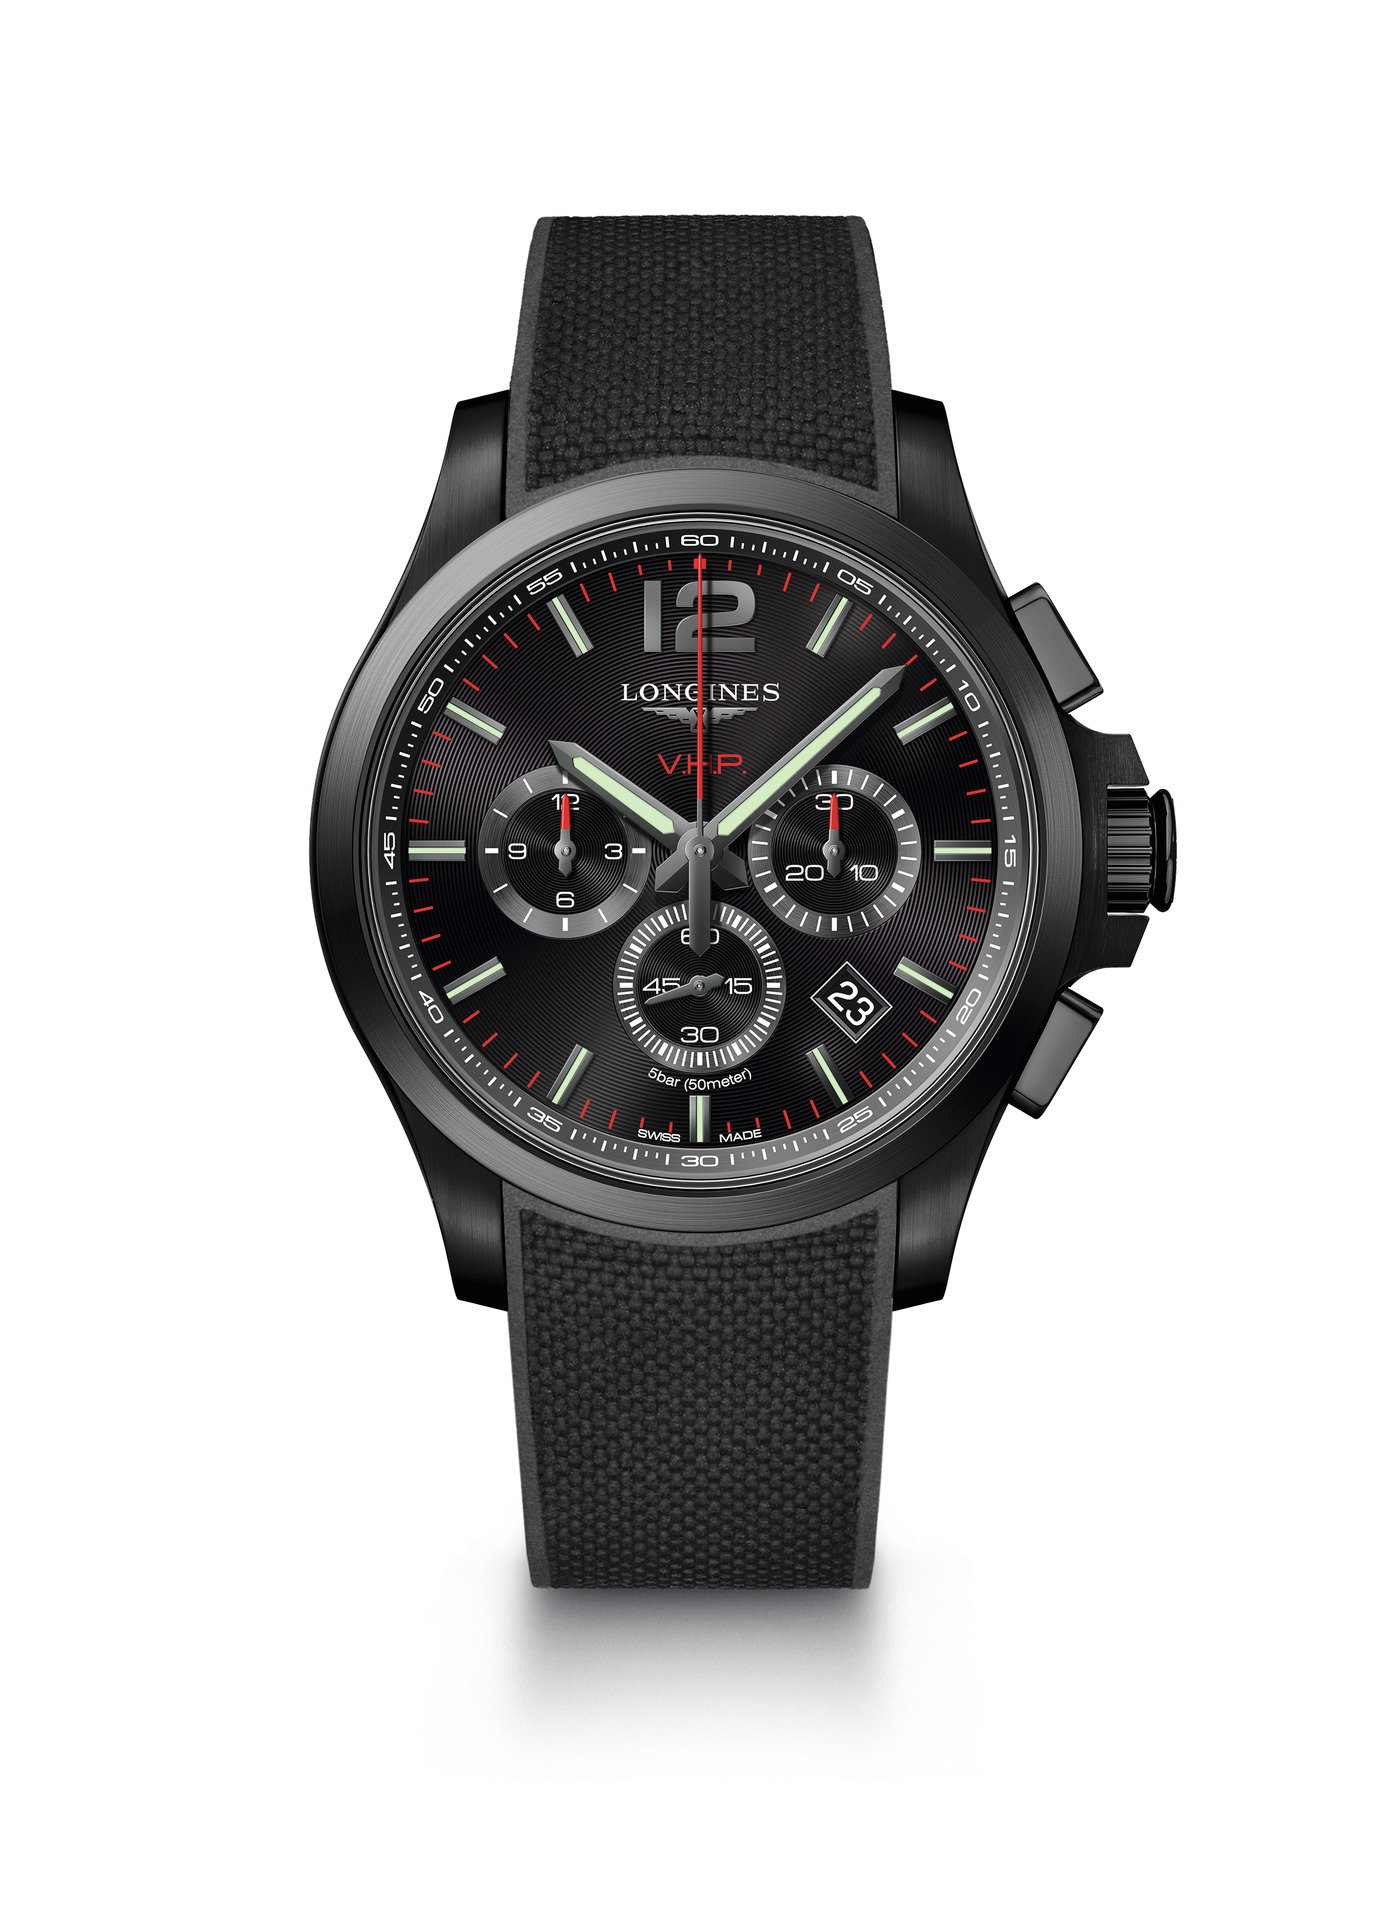 Longines Conquest V.H.P. Chronograph Watch 3